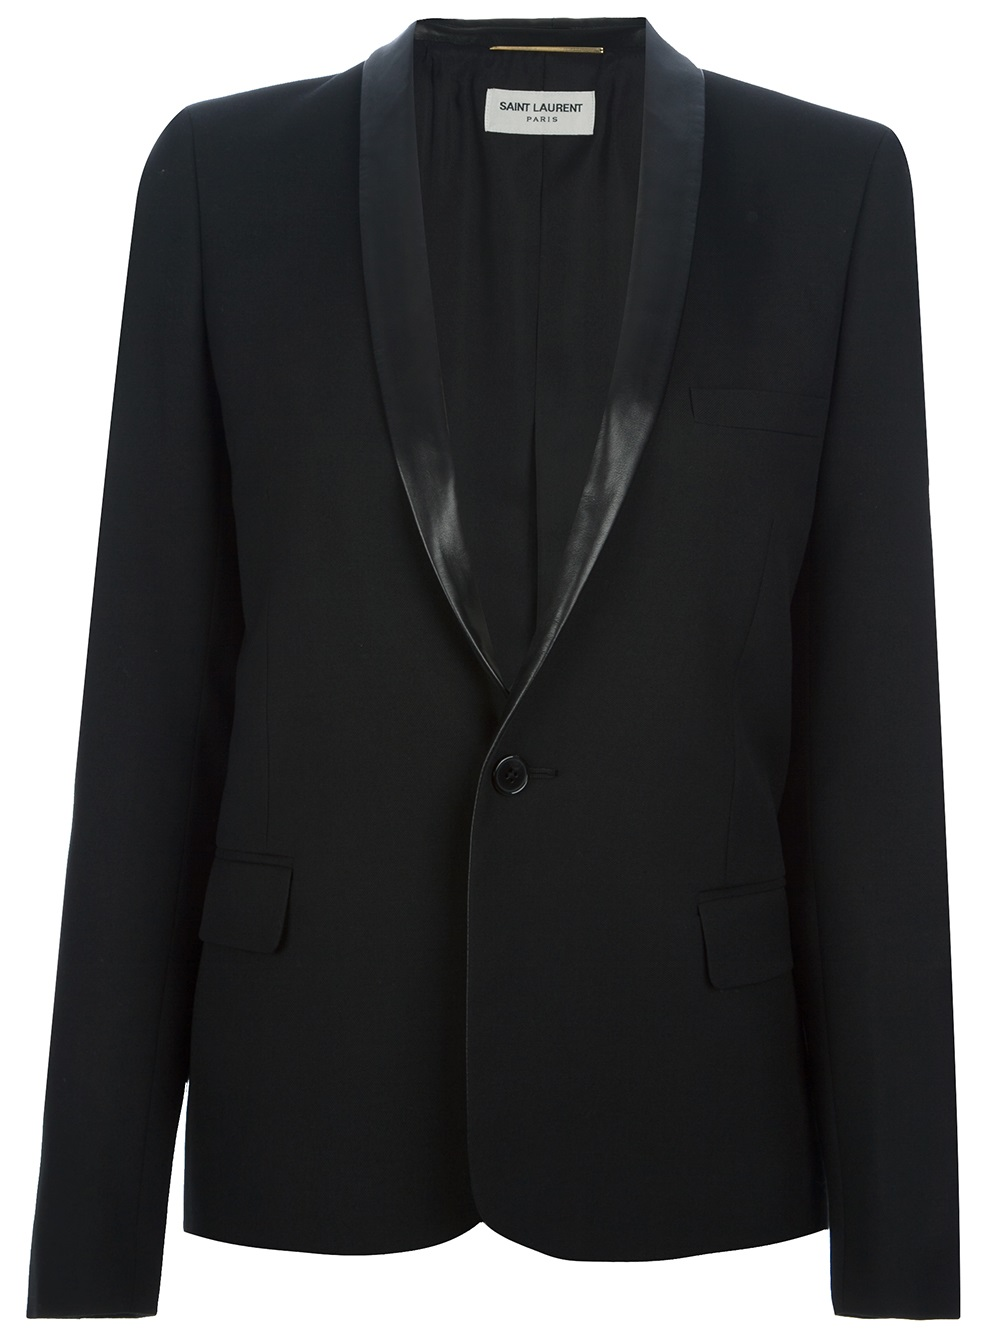 ecru black single women A single-button design adds classic style to your wardrobe in this sleek, curve-skimming blazer that's a versatile pair to complement your look from weekday business meetings to casual weekend outings.